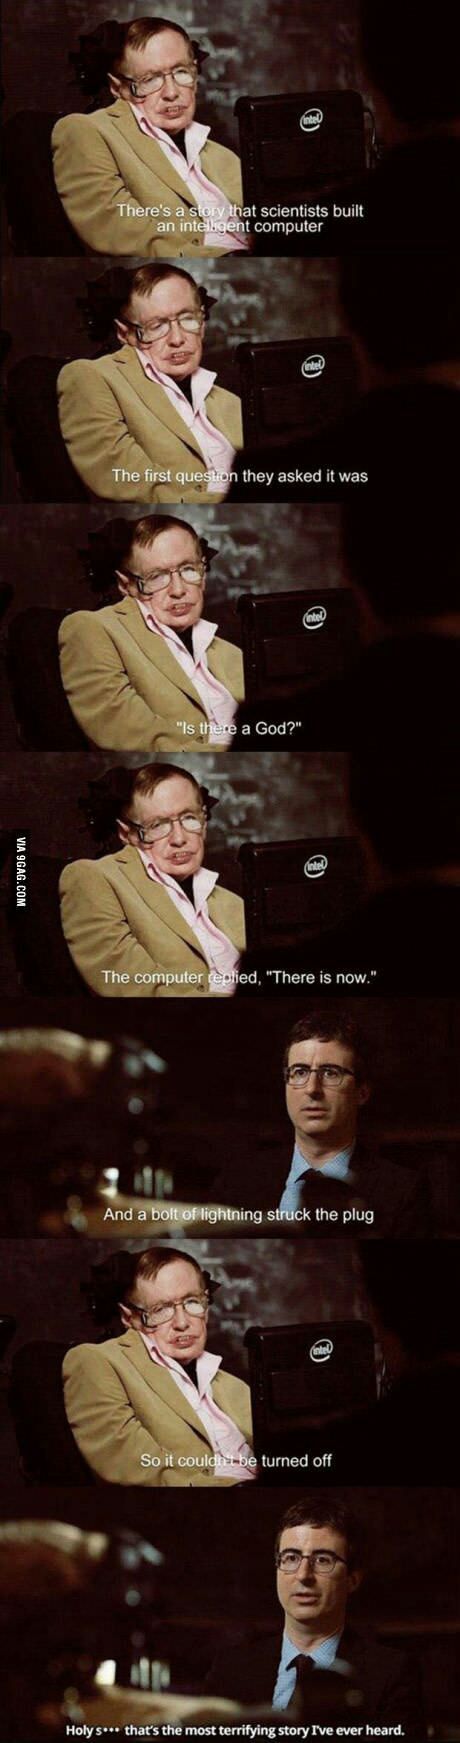 Just Stephen Hawking being Stephen Hawking.